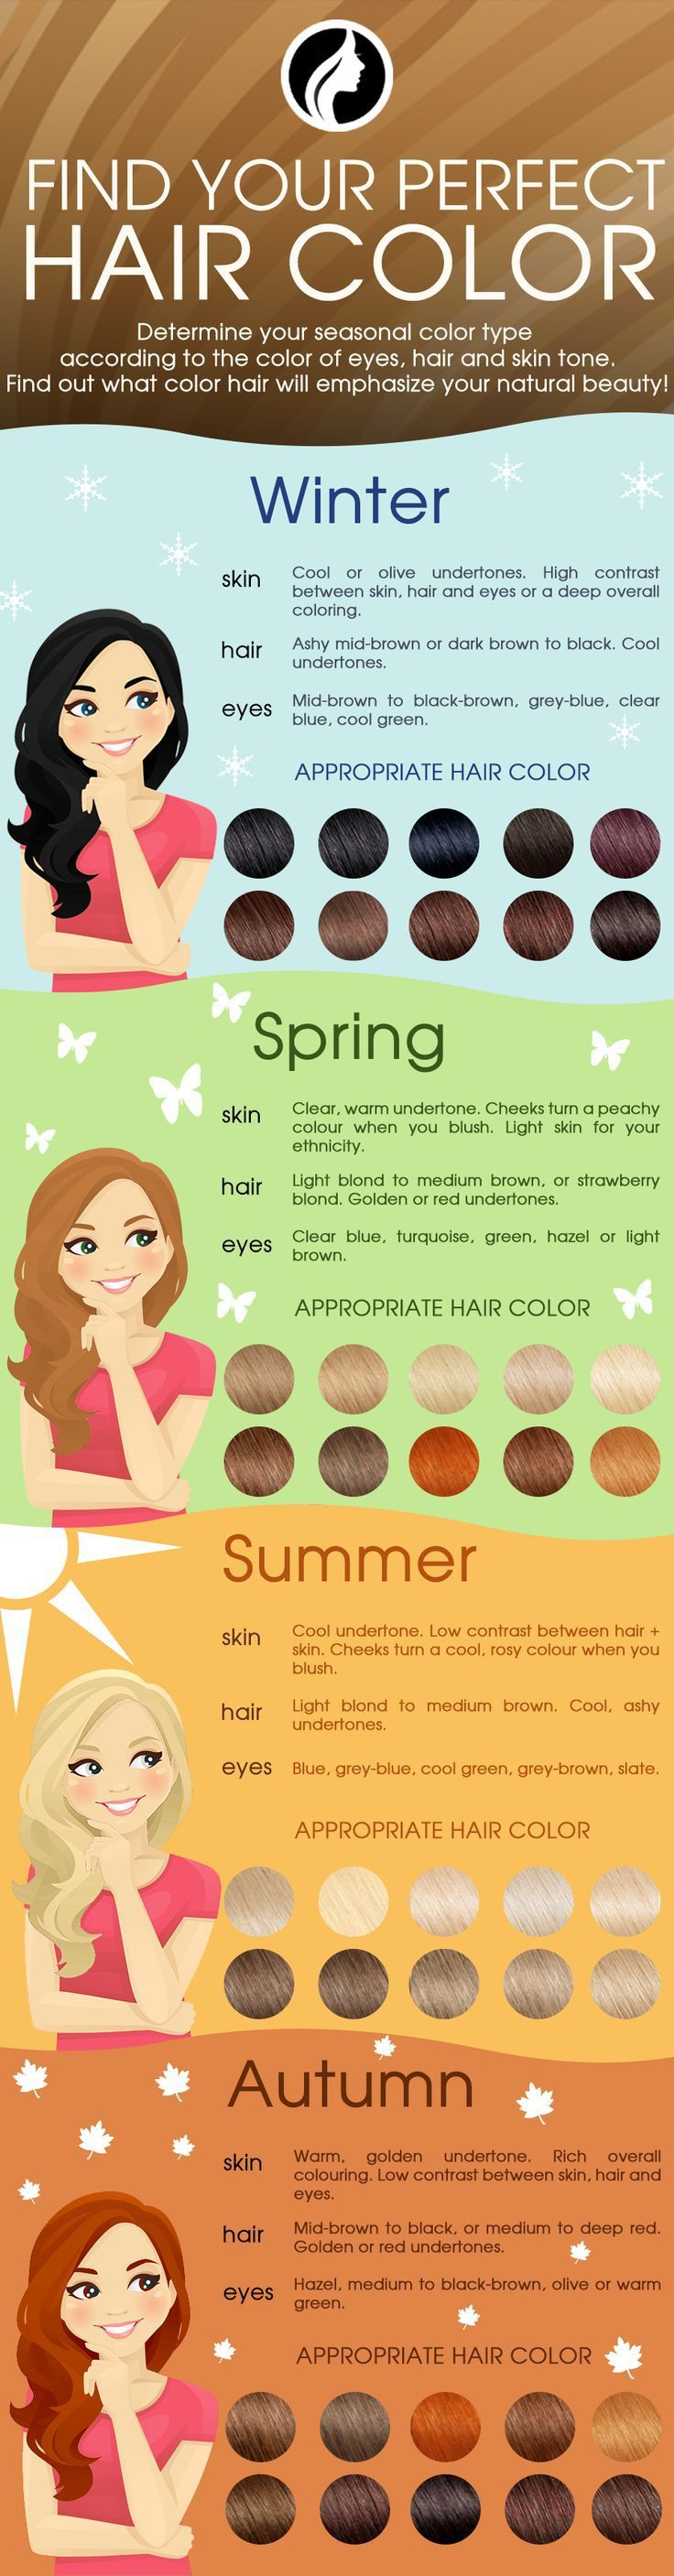 COLOR THAT COMPLEMENTS Hair color + skin tone, a match for every ...